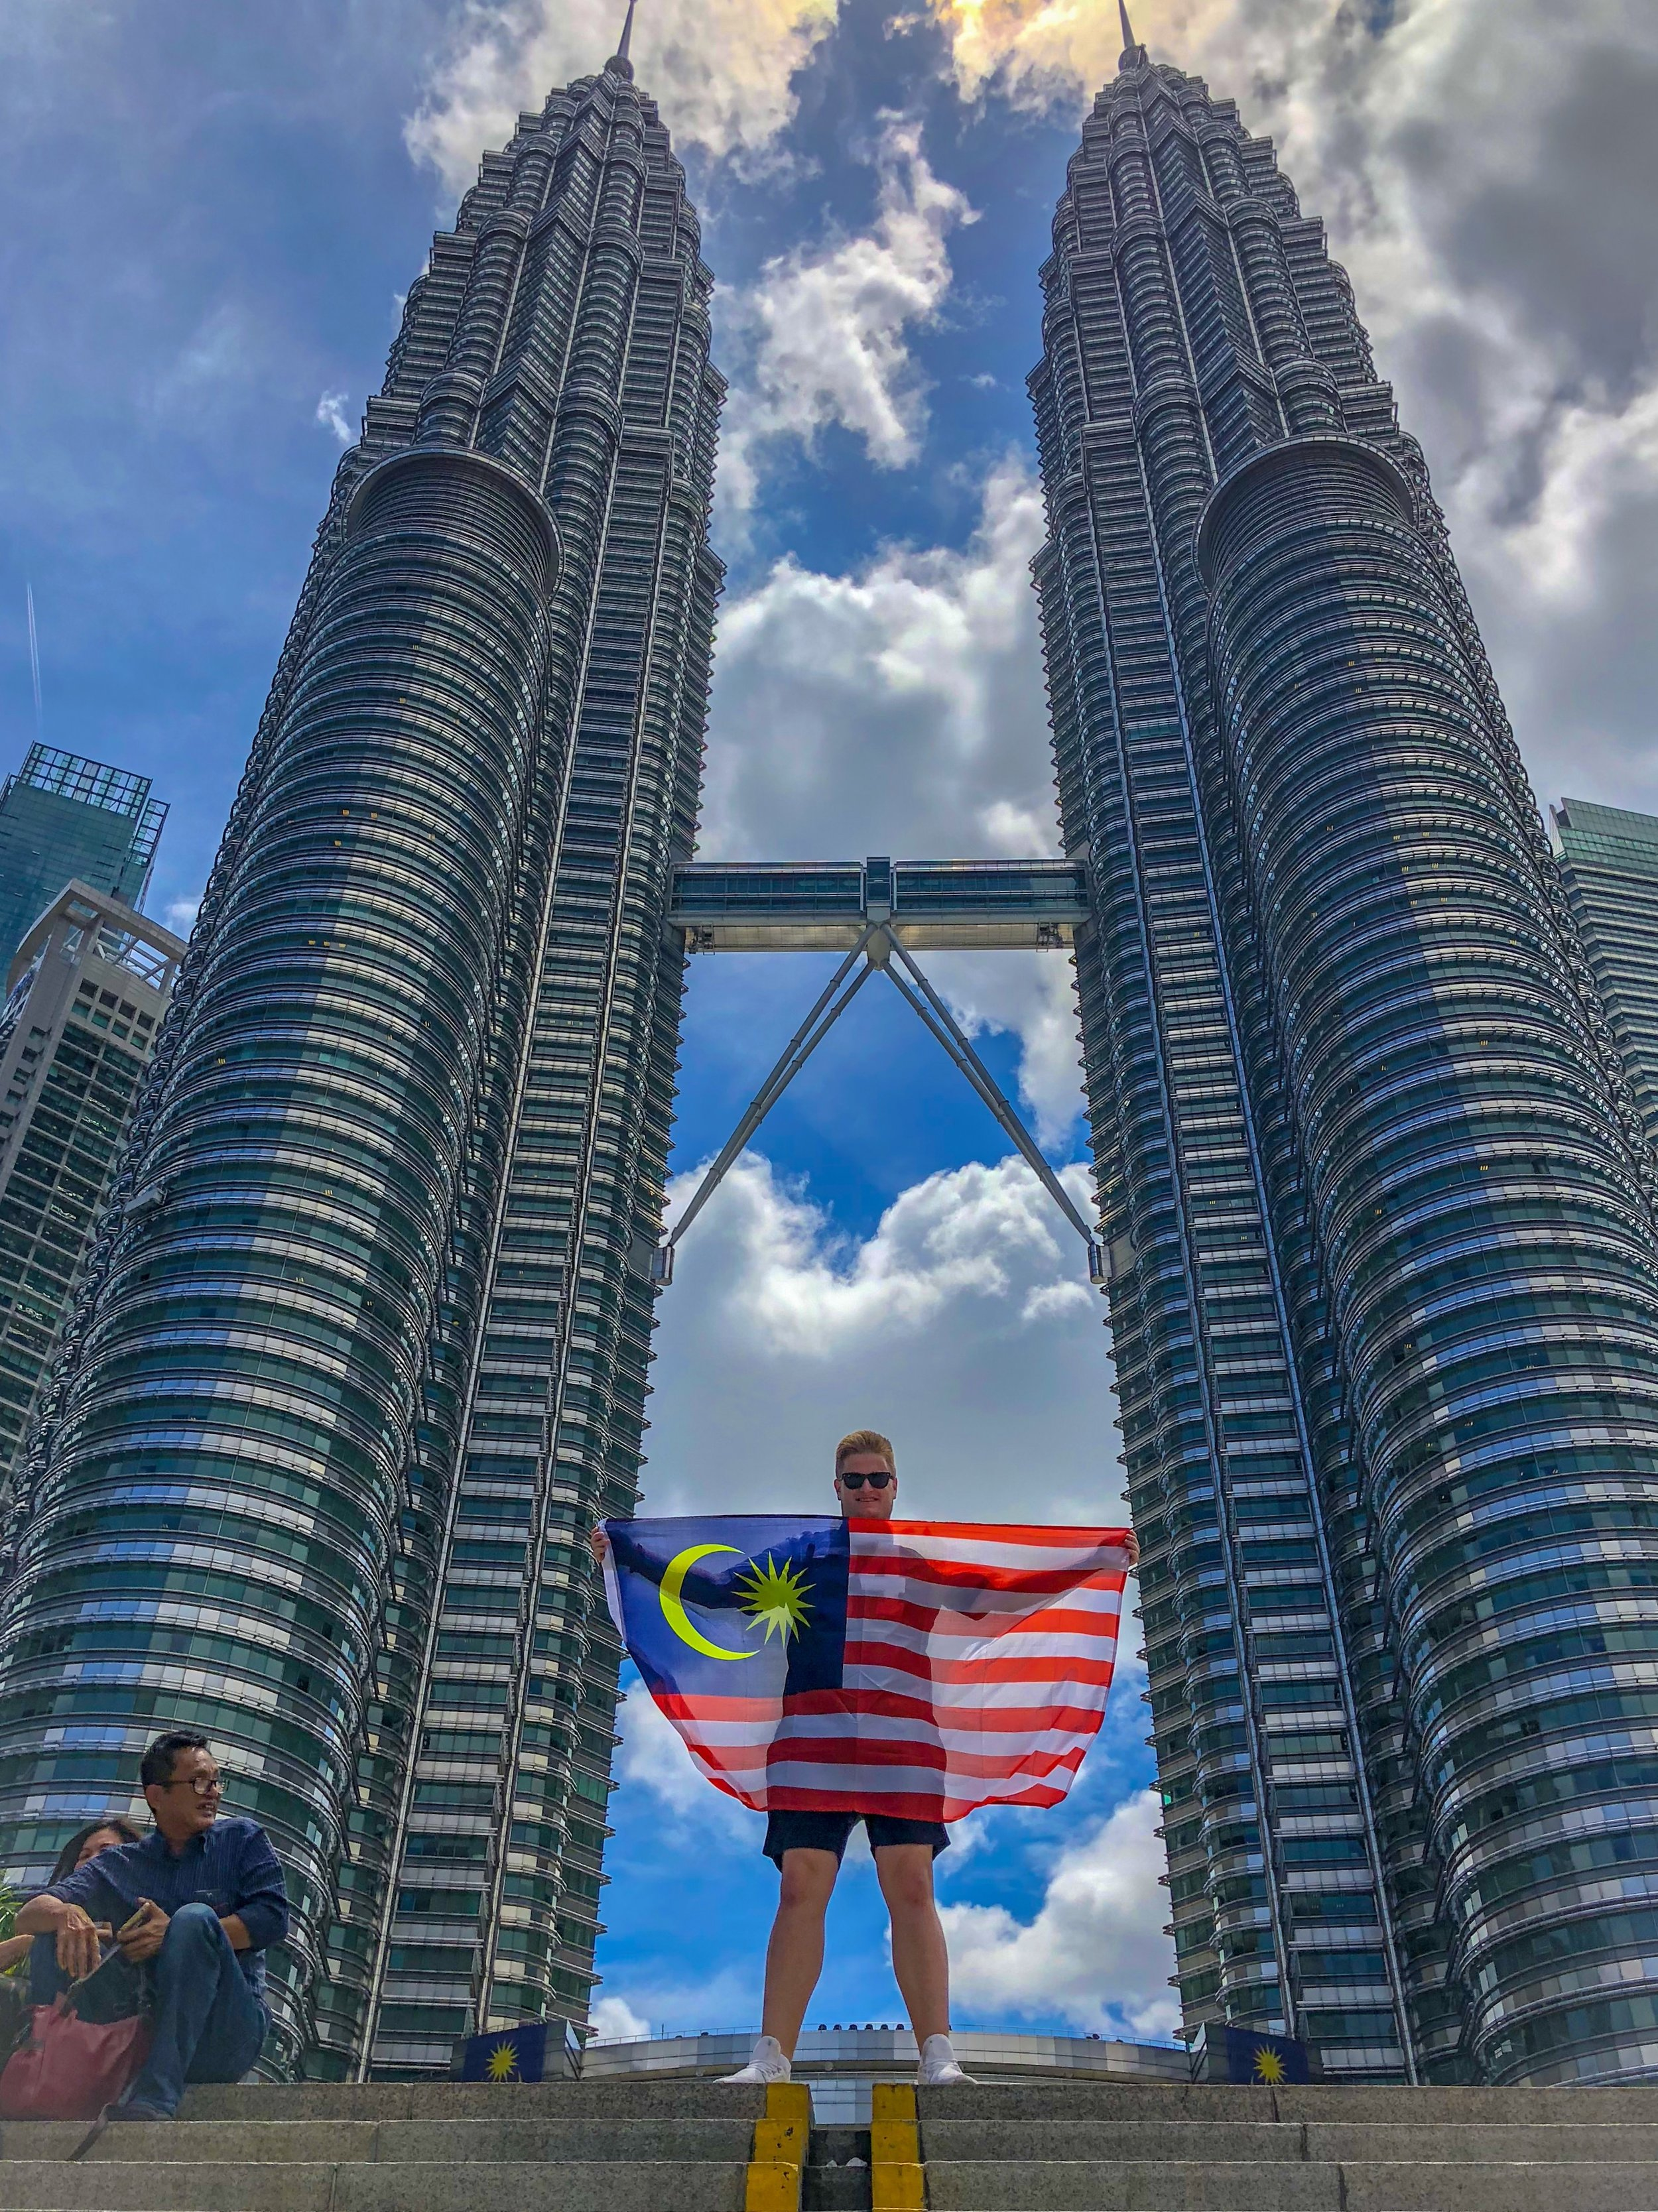 Getting the iconic shot underneath the Petronas Twin Towers.